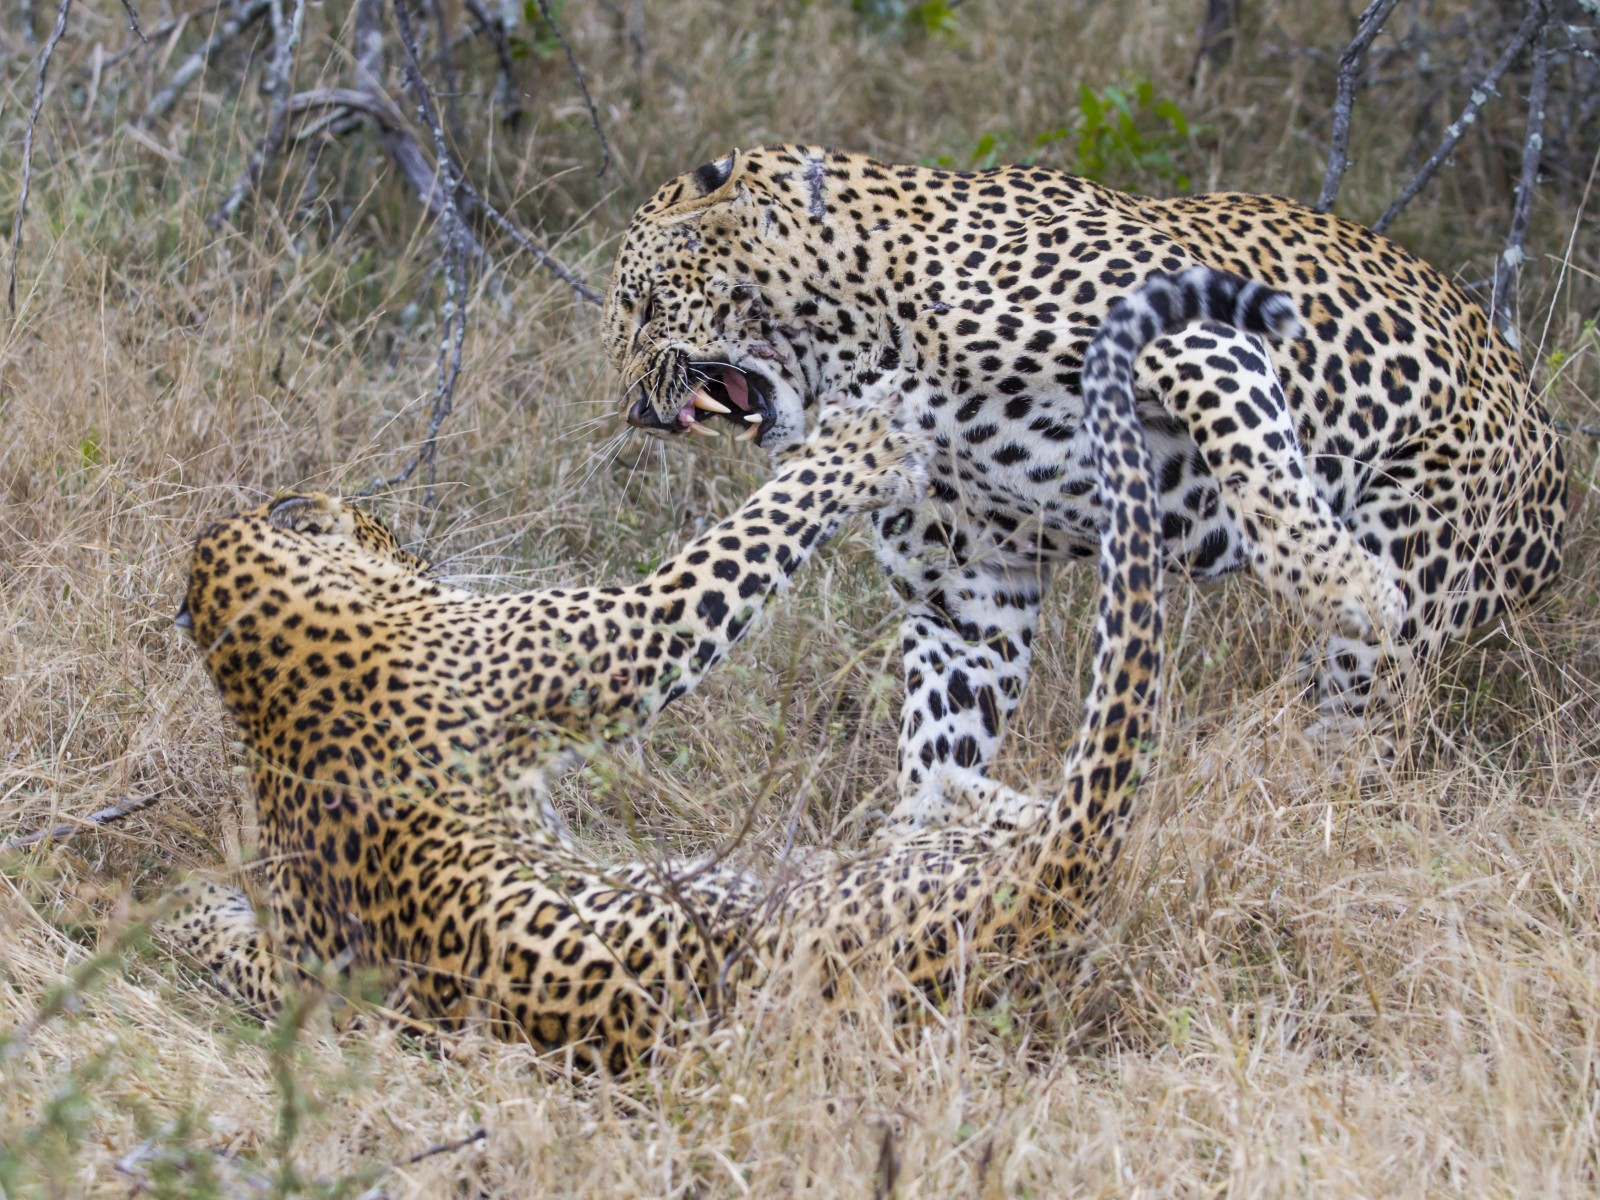 Leopards mating, photo safari, fivezero safaris, photographic safari, wildlife, kurt jay bertels,